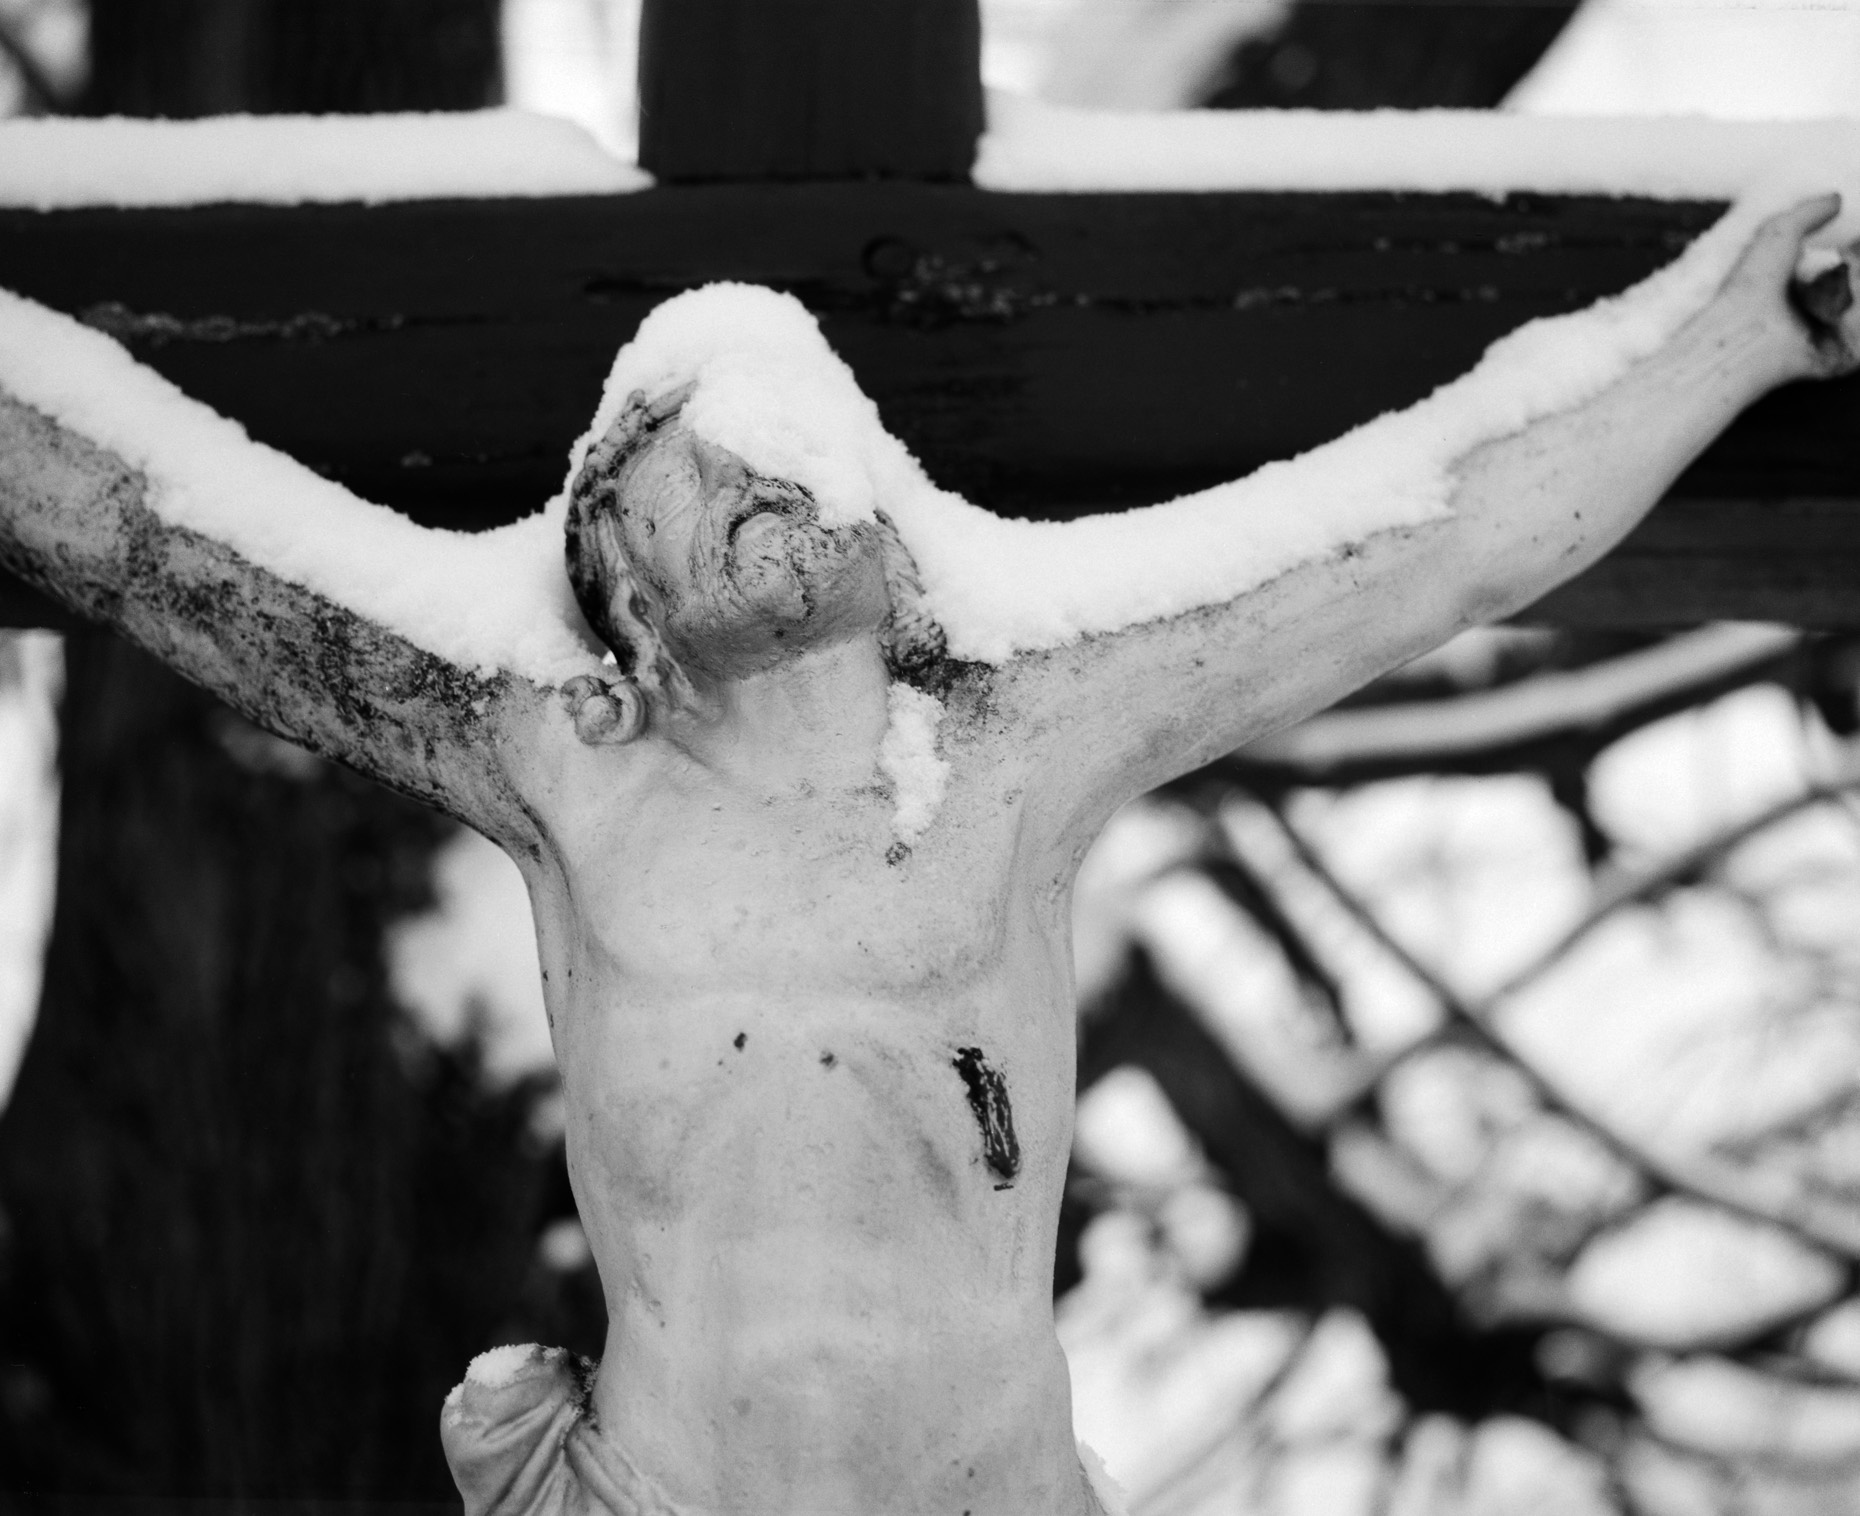 Axel Bernstorff, Collectable limited edition fine photographic art prints. Diosjeno crucifix I, Hungary.